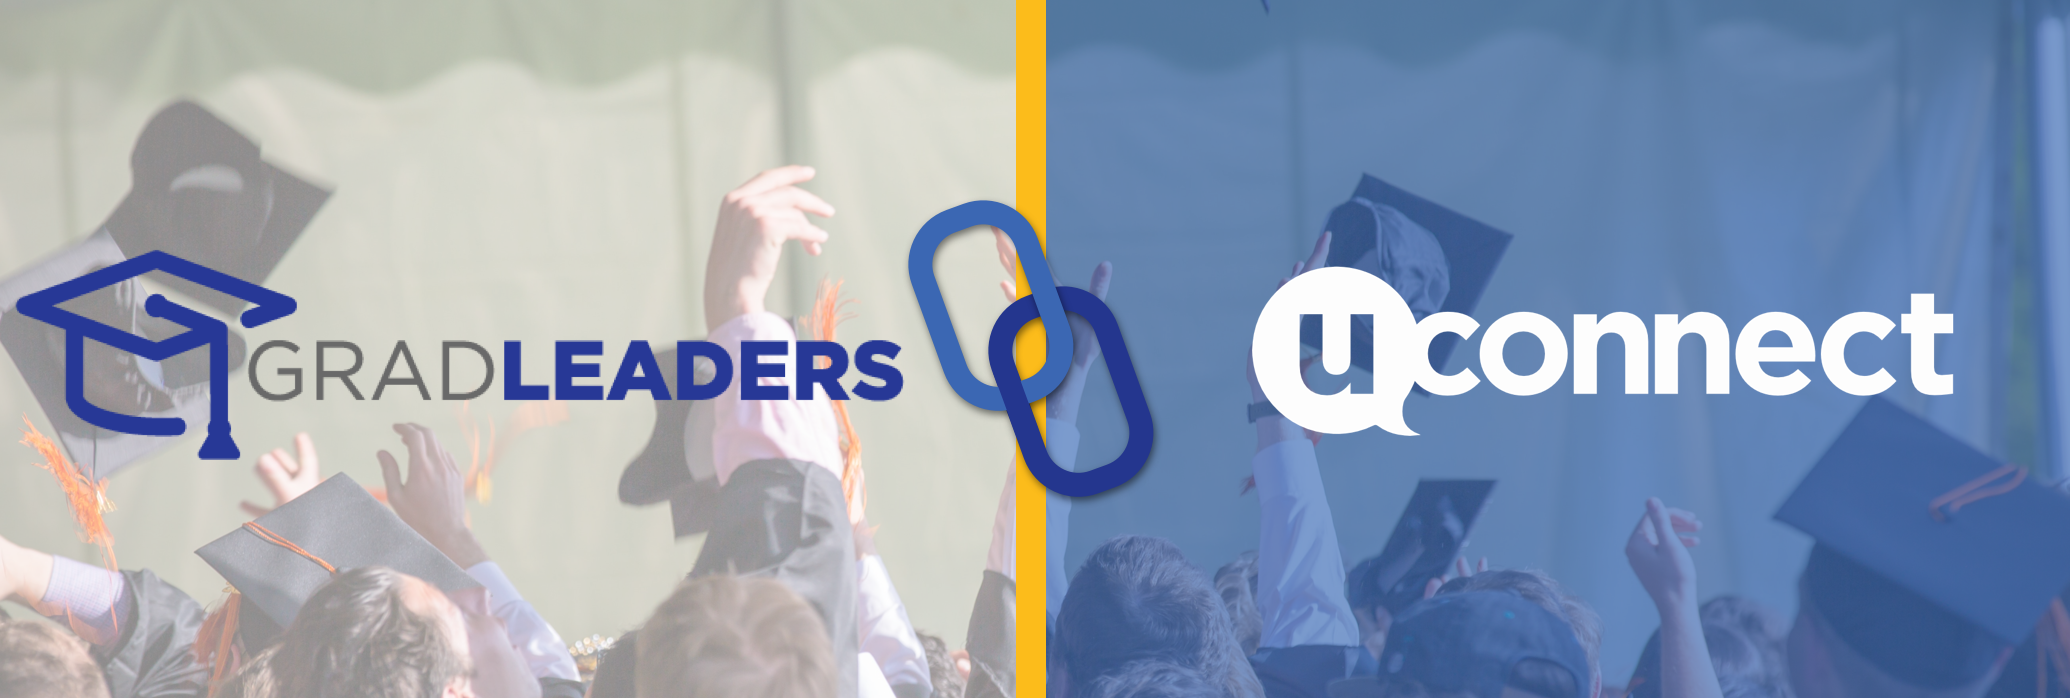 GradLeaders and uConnect Partner to Help Schools Integrate Career Data into the Campus Ecosystem